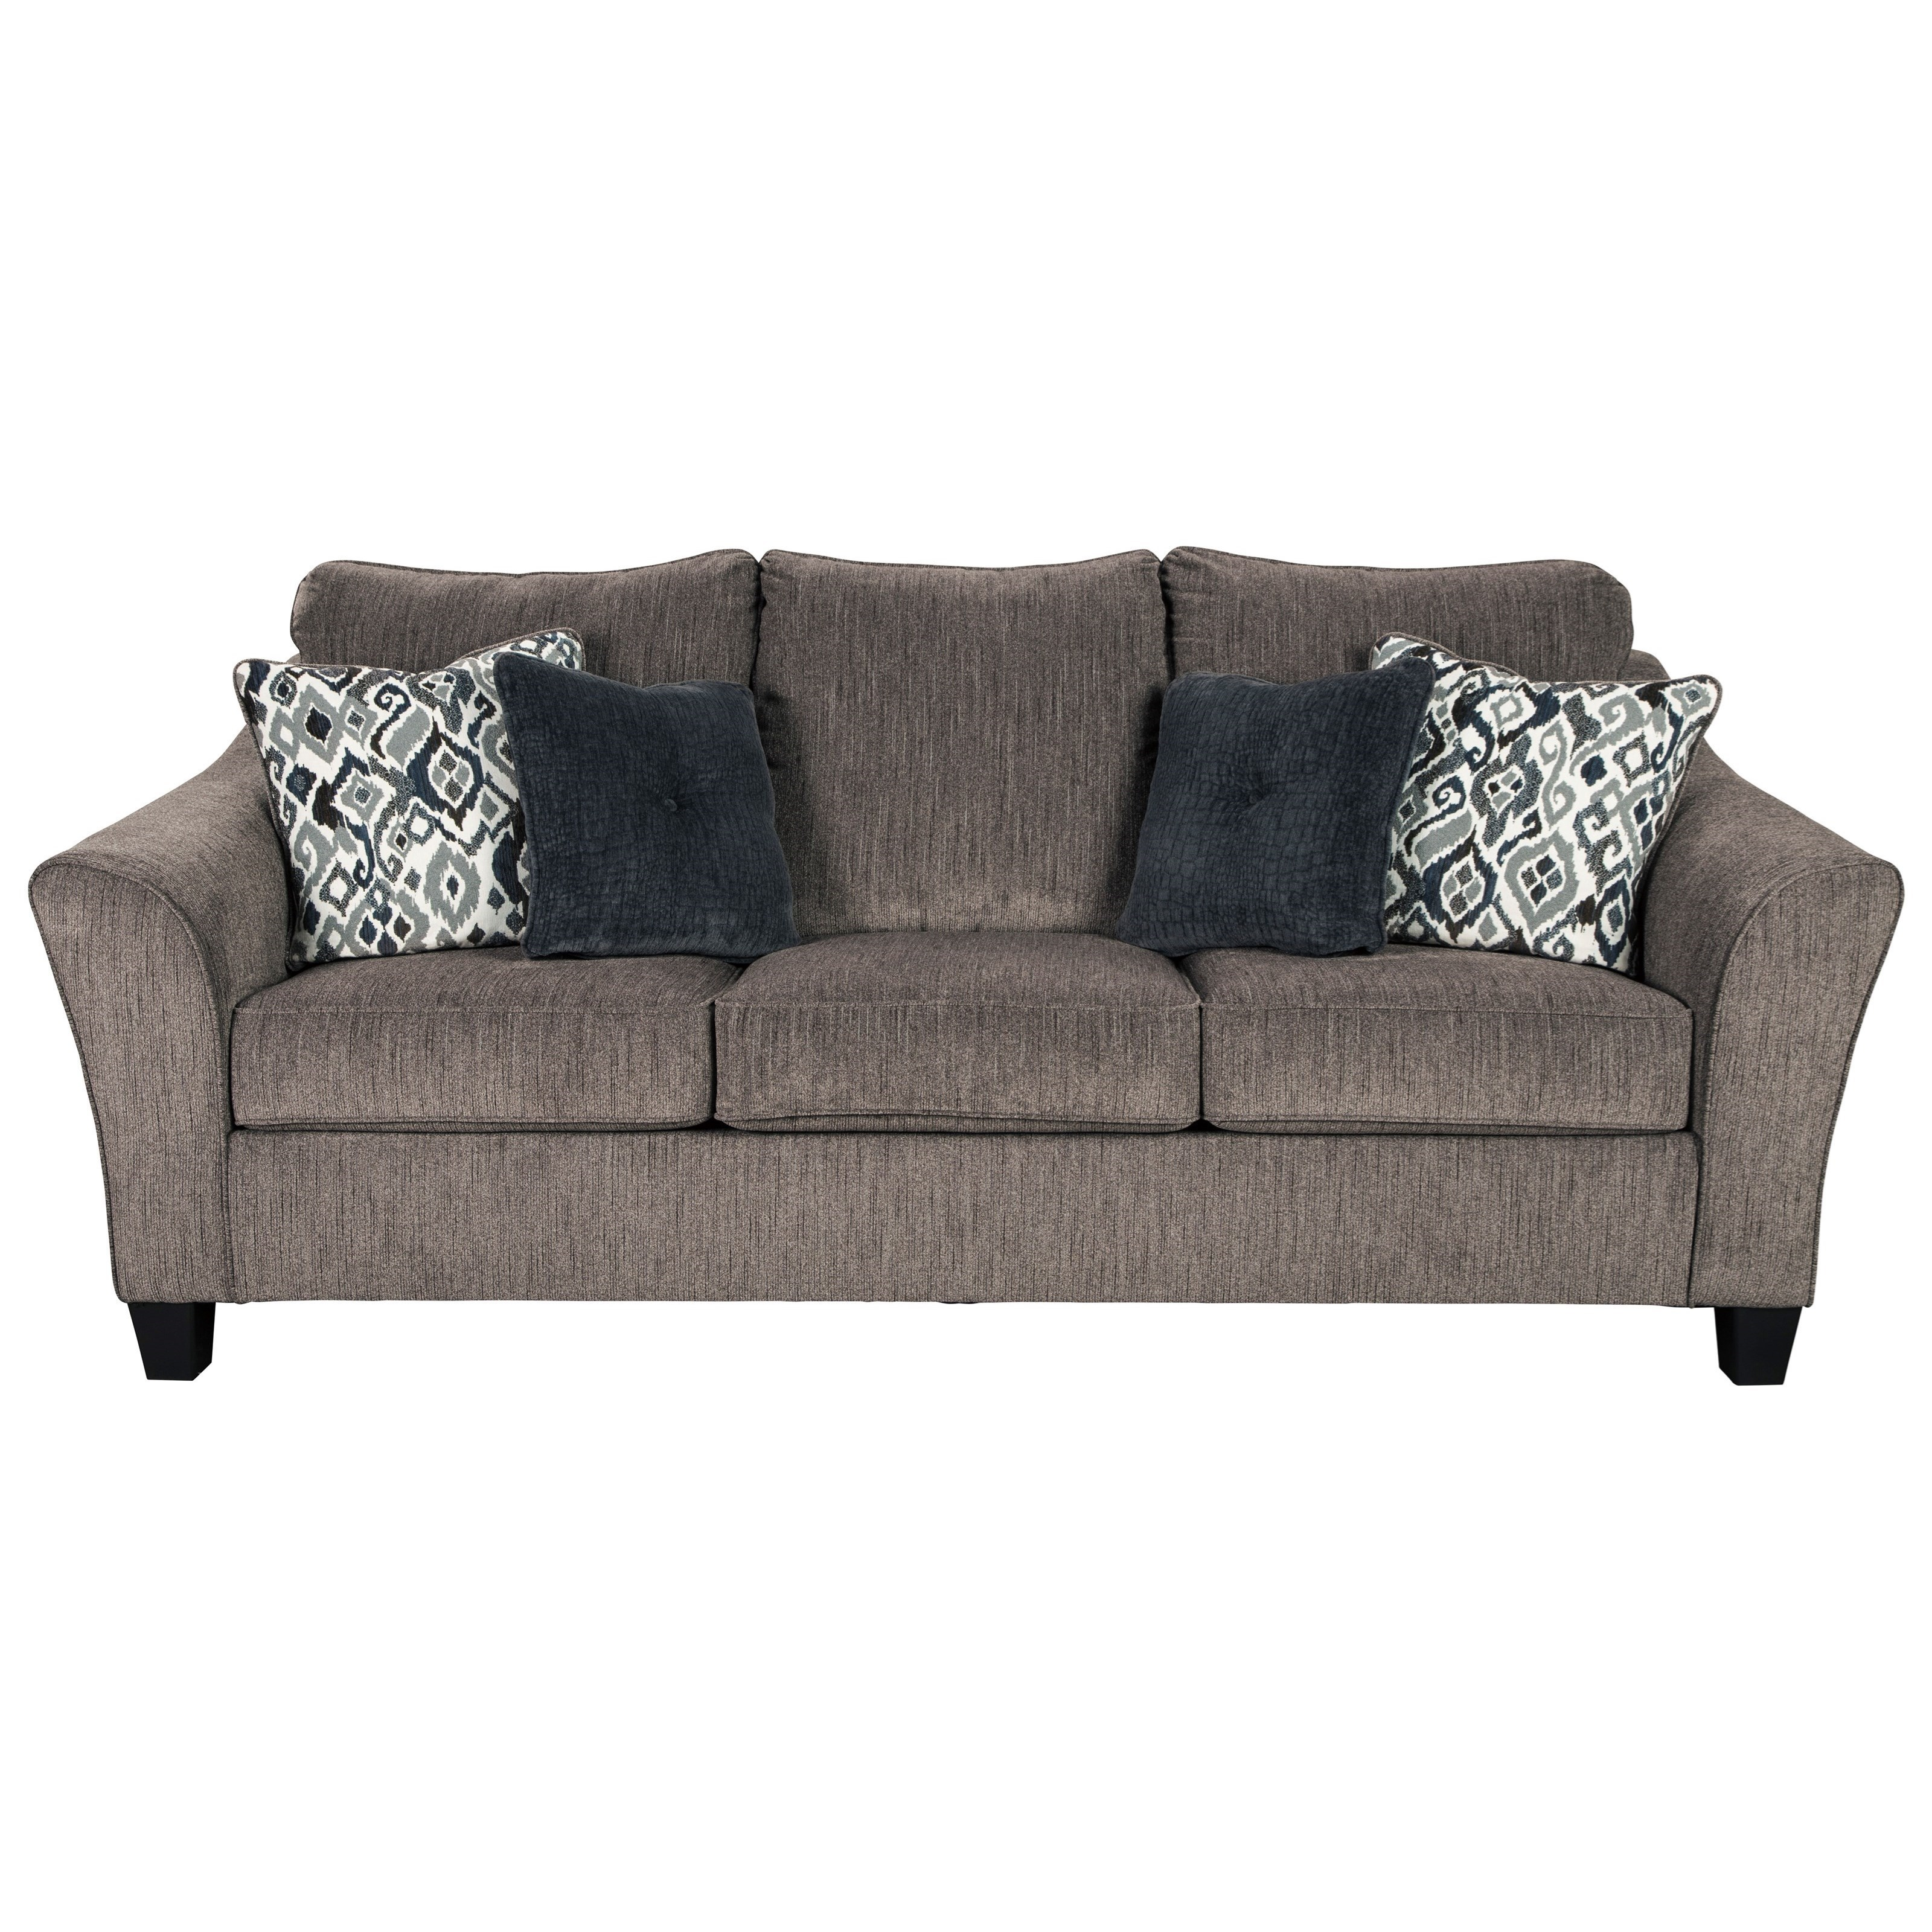 Signature Design By Ashley Nemoli Transitional Sofa With Flared Arm Royal Furniture Sofas